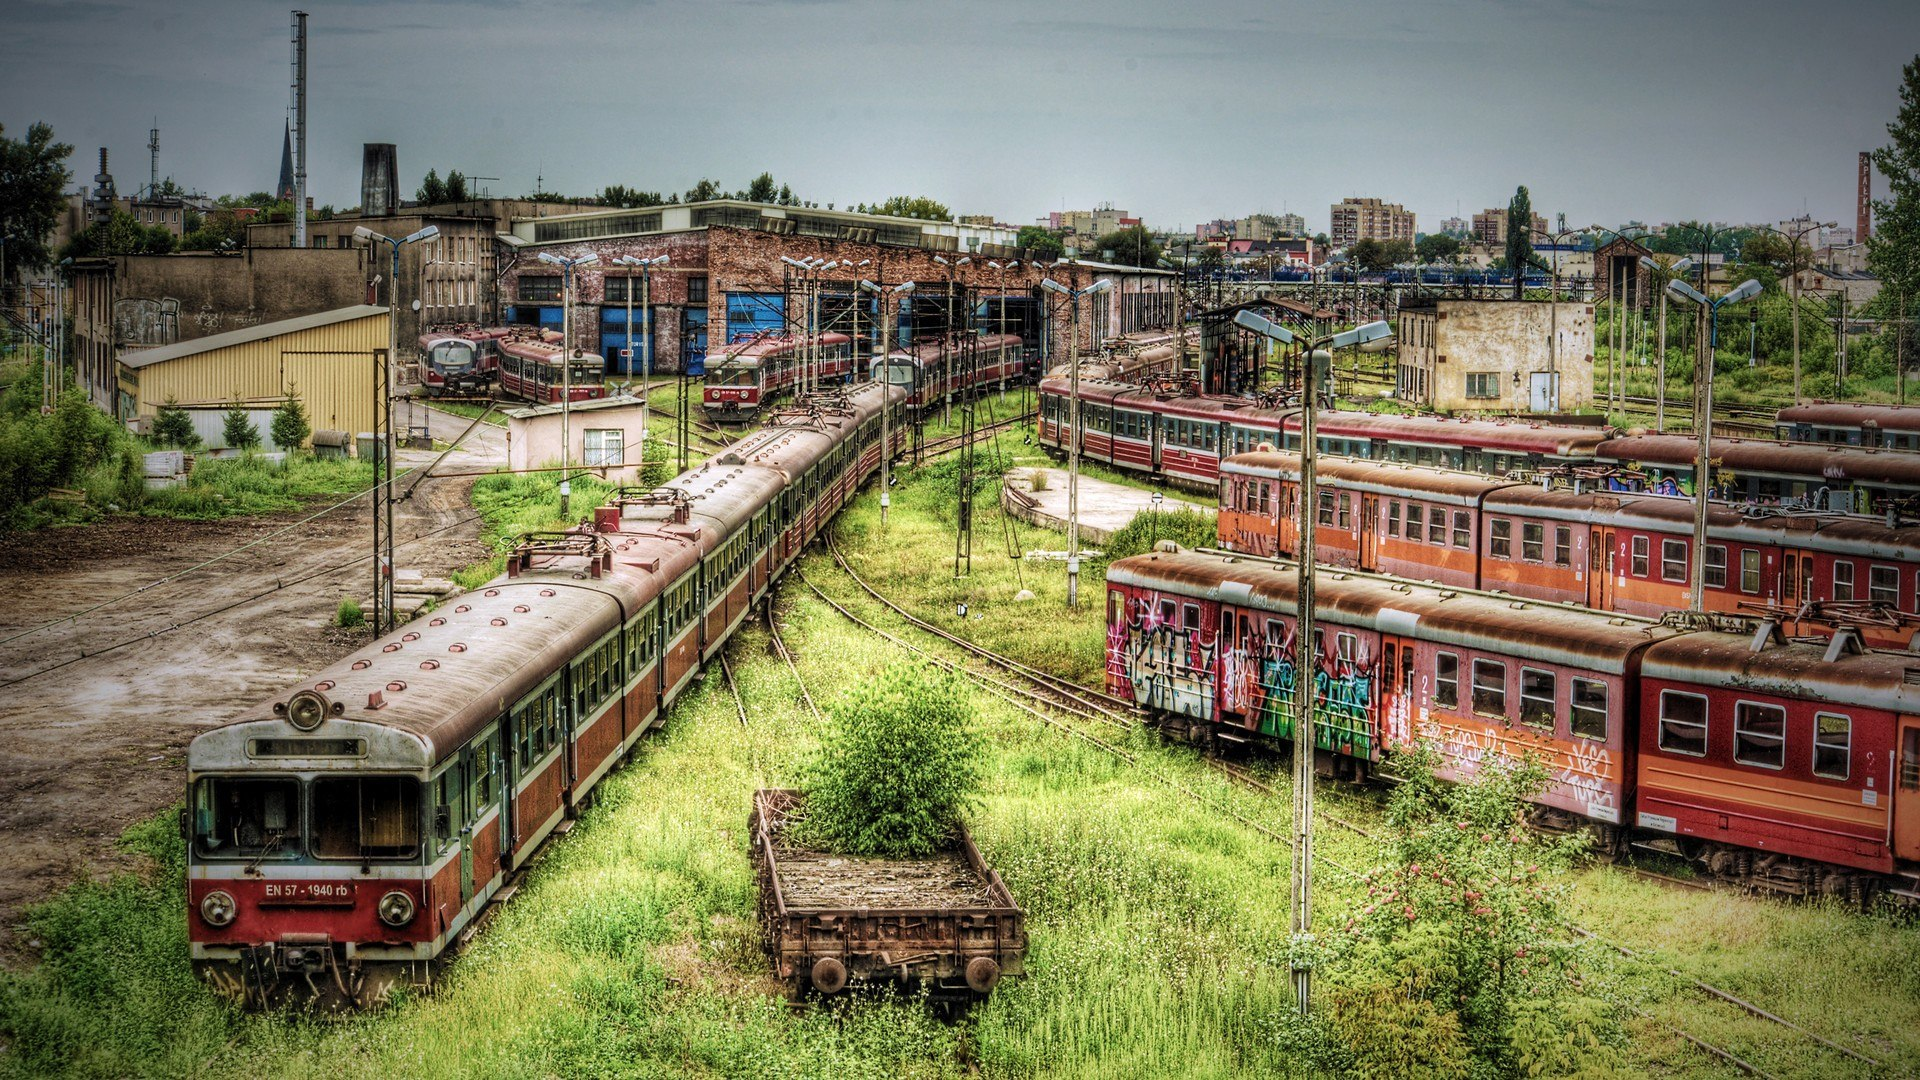 Cemetery of old trains wallpapers and images   wallpapers pictures 1920x1080